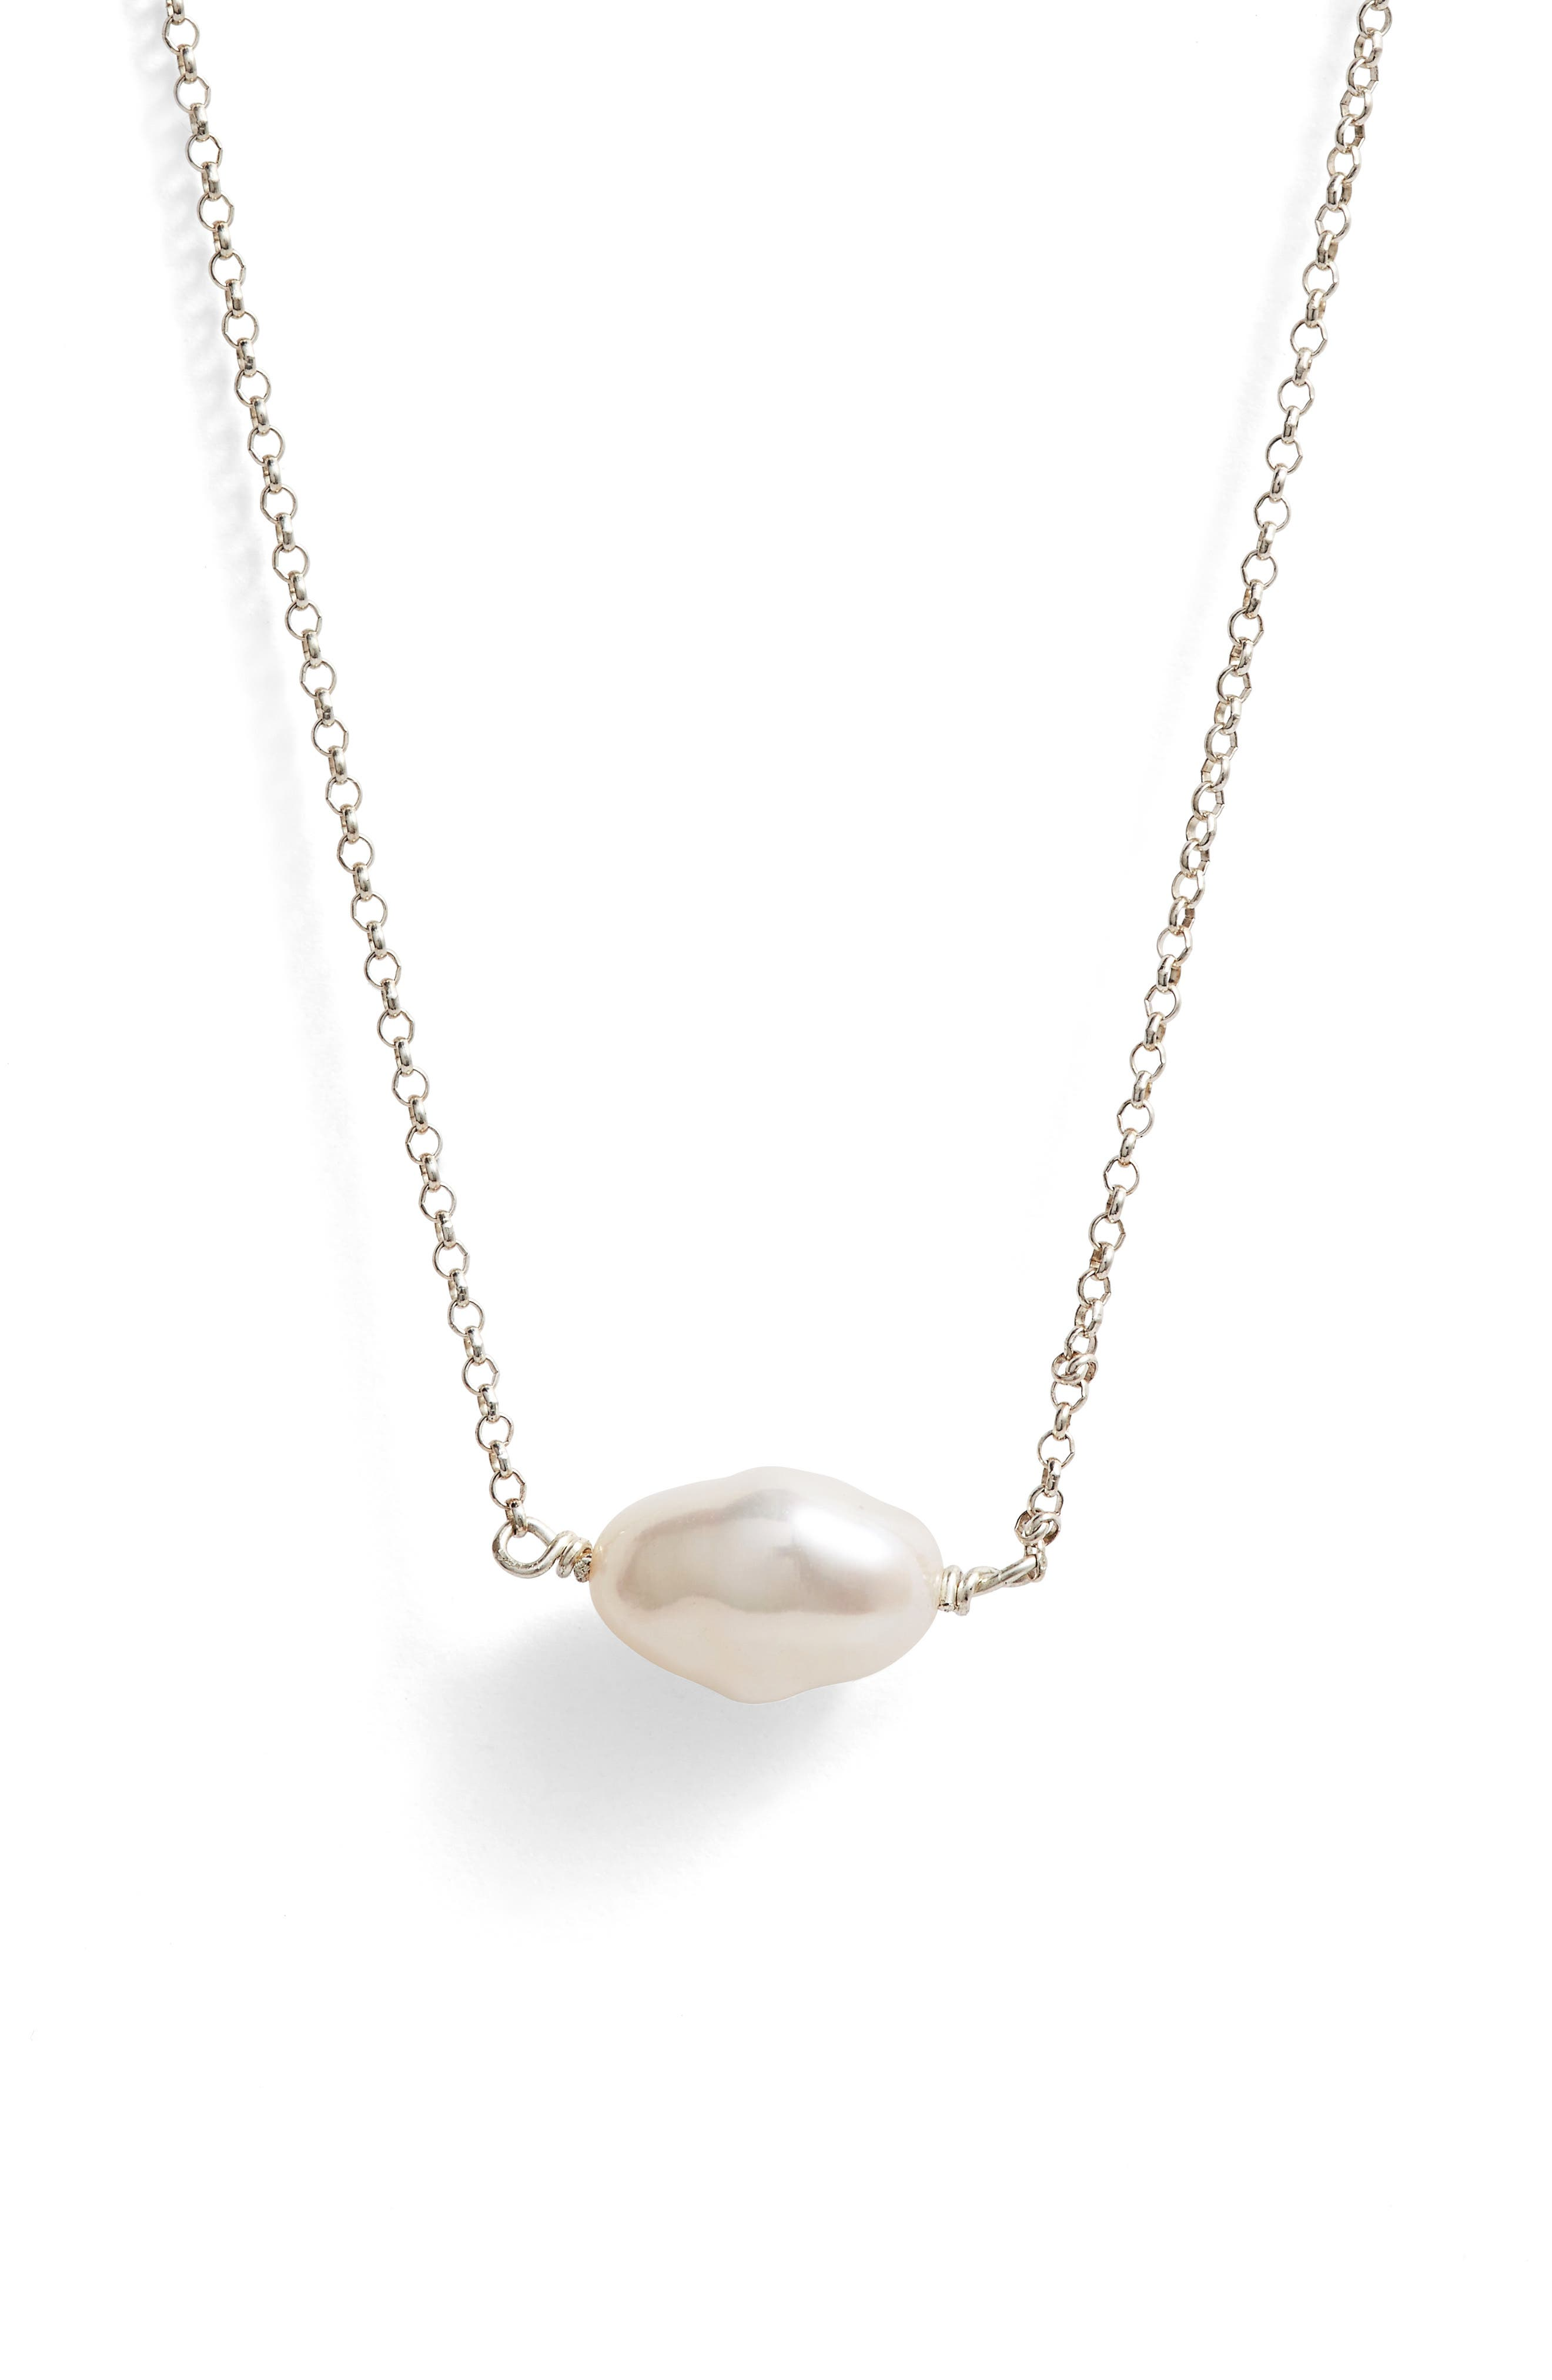 Keshi Cultured Pearl Necklace,                             Alternate thumbnail 3, color,                             Sterling Silver/ Pearl